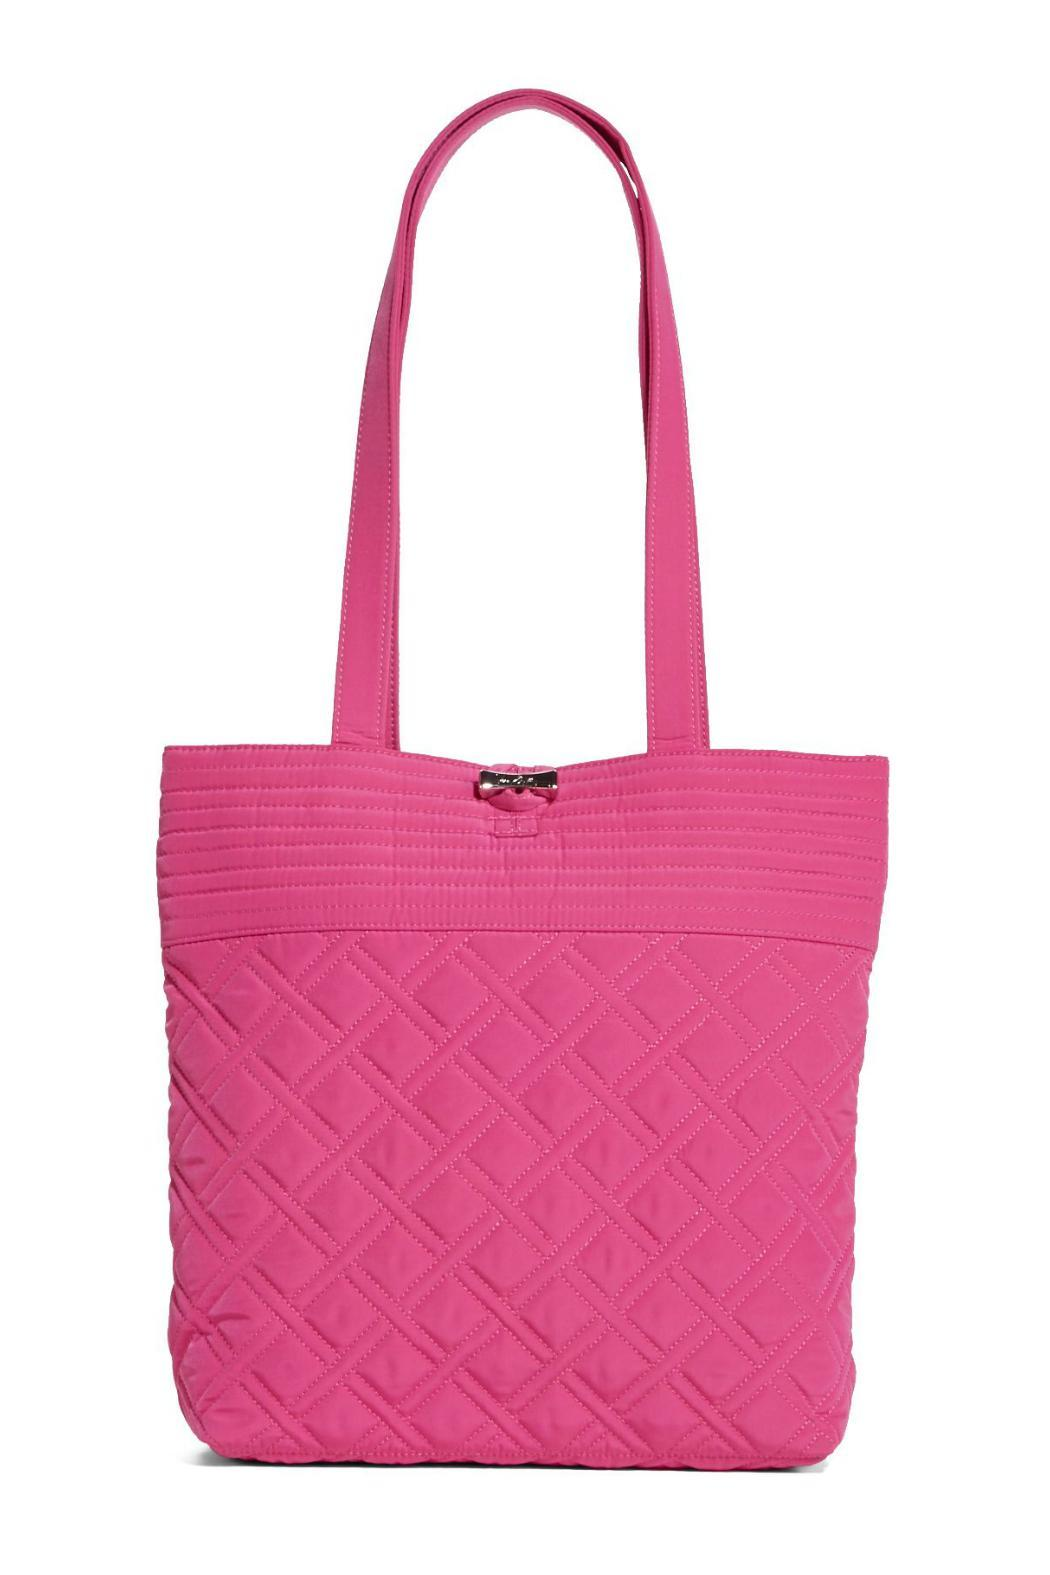 Vera Bradley Coupon Codes, Sales & Specials | November View Vera Bradley's discounts on travel, handbags, accessories, and more with this handy link.